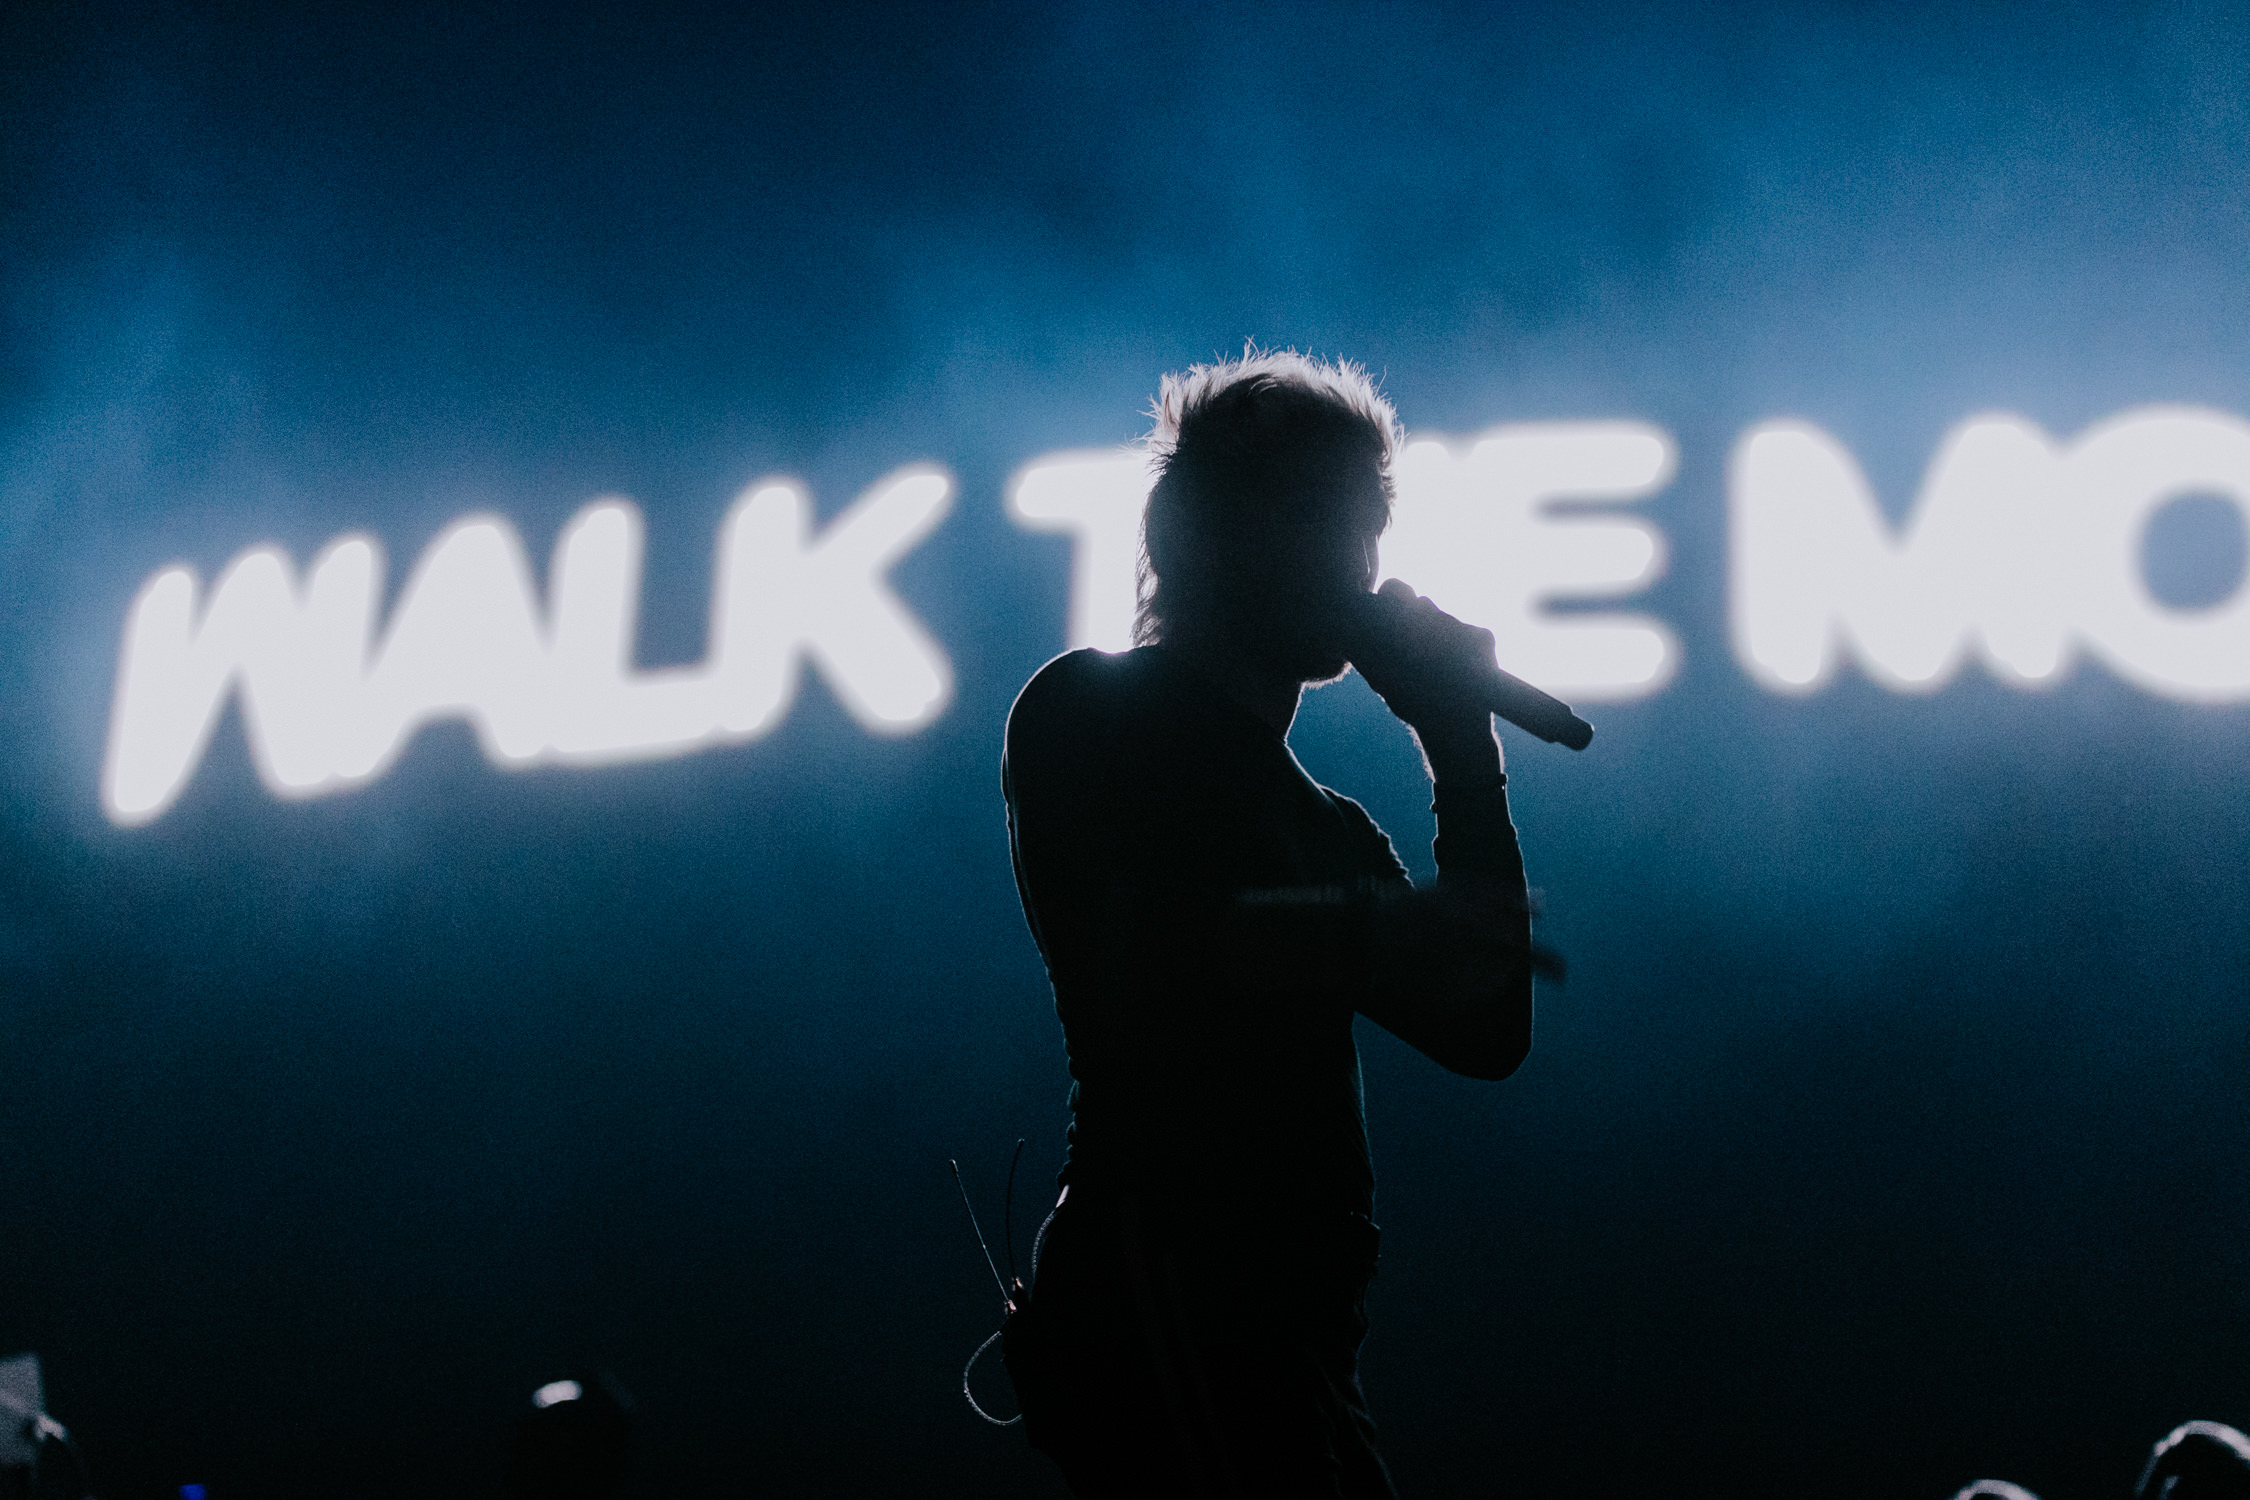 nick-muse-tour-hazy-silhouette-walk-the-moon-AnnaLeeMedia